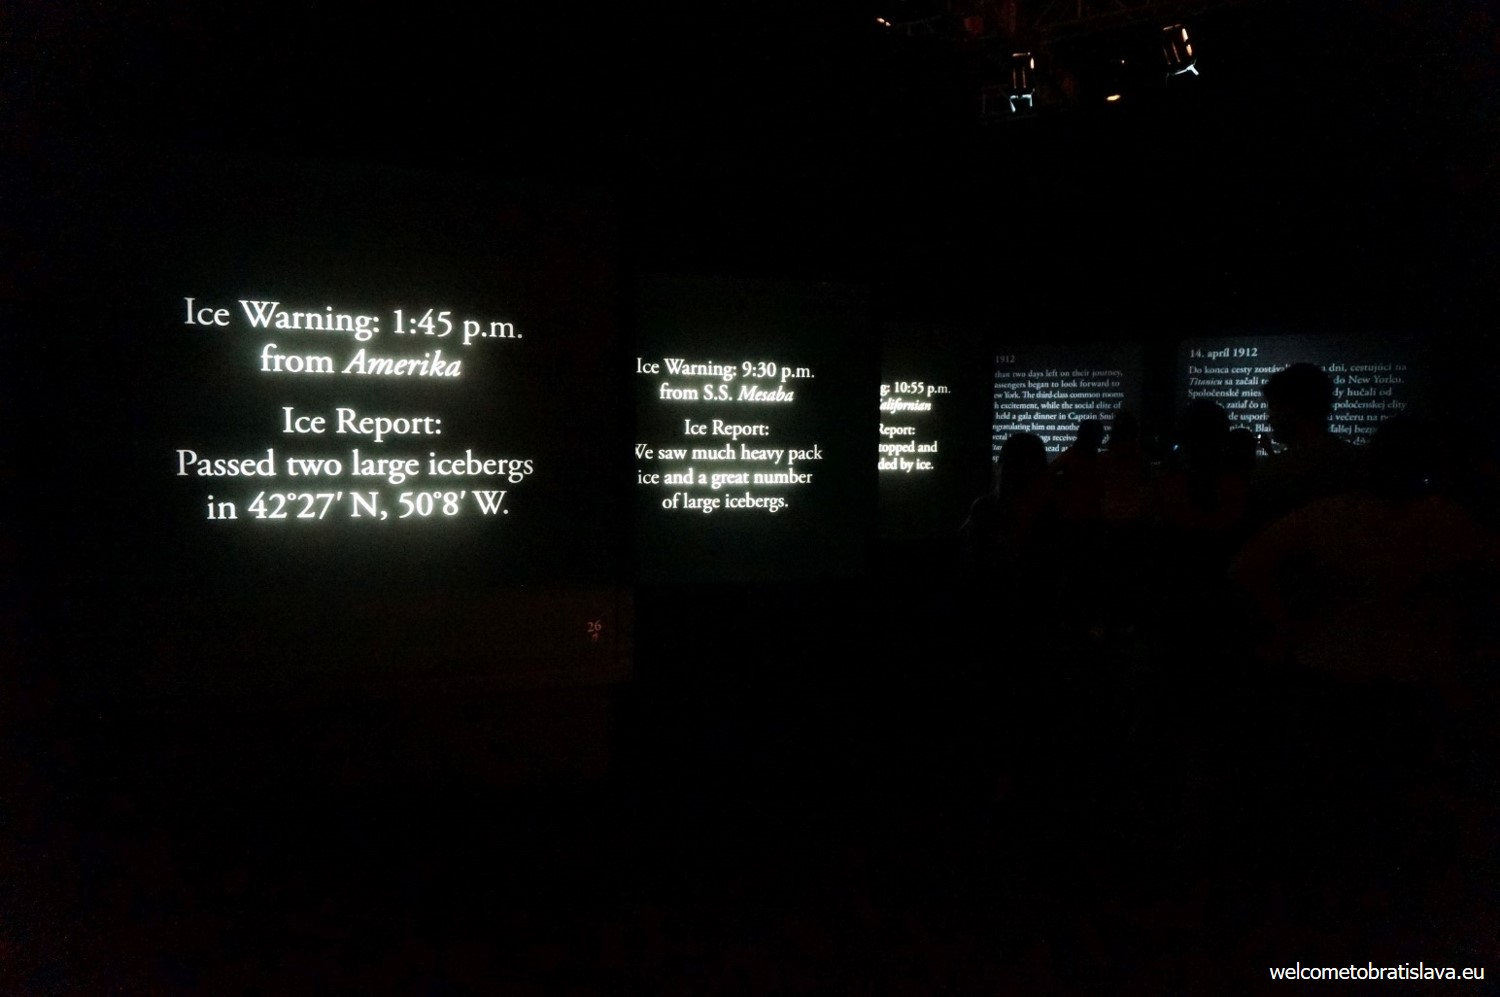 The dark room with displayed messages of ice warnings